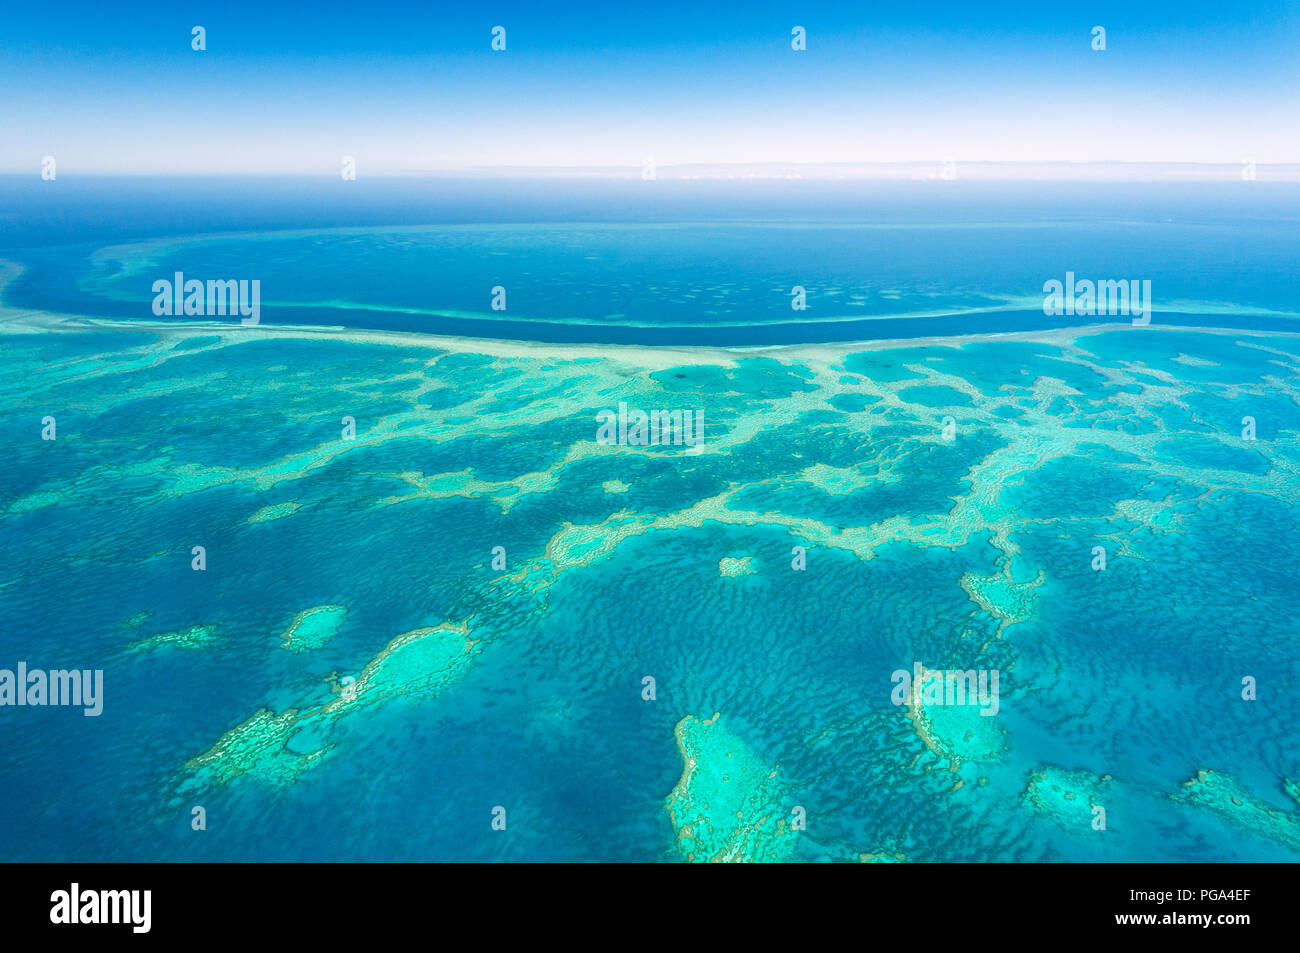 Aerial of the famous Hook & Hardy Reef in the Great Barrier Reef. - Stock Image